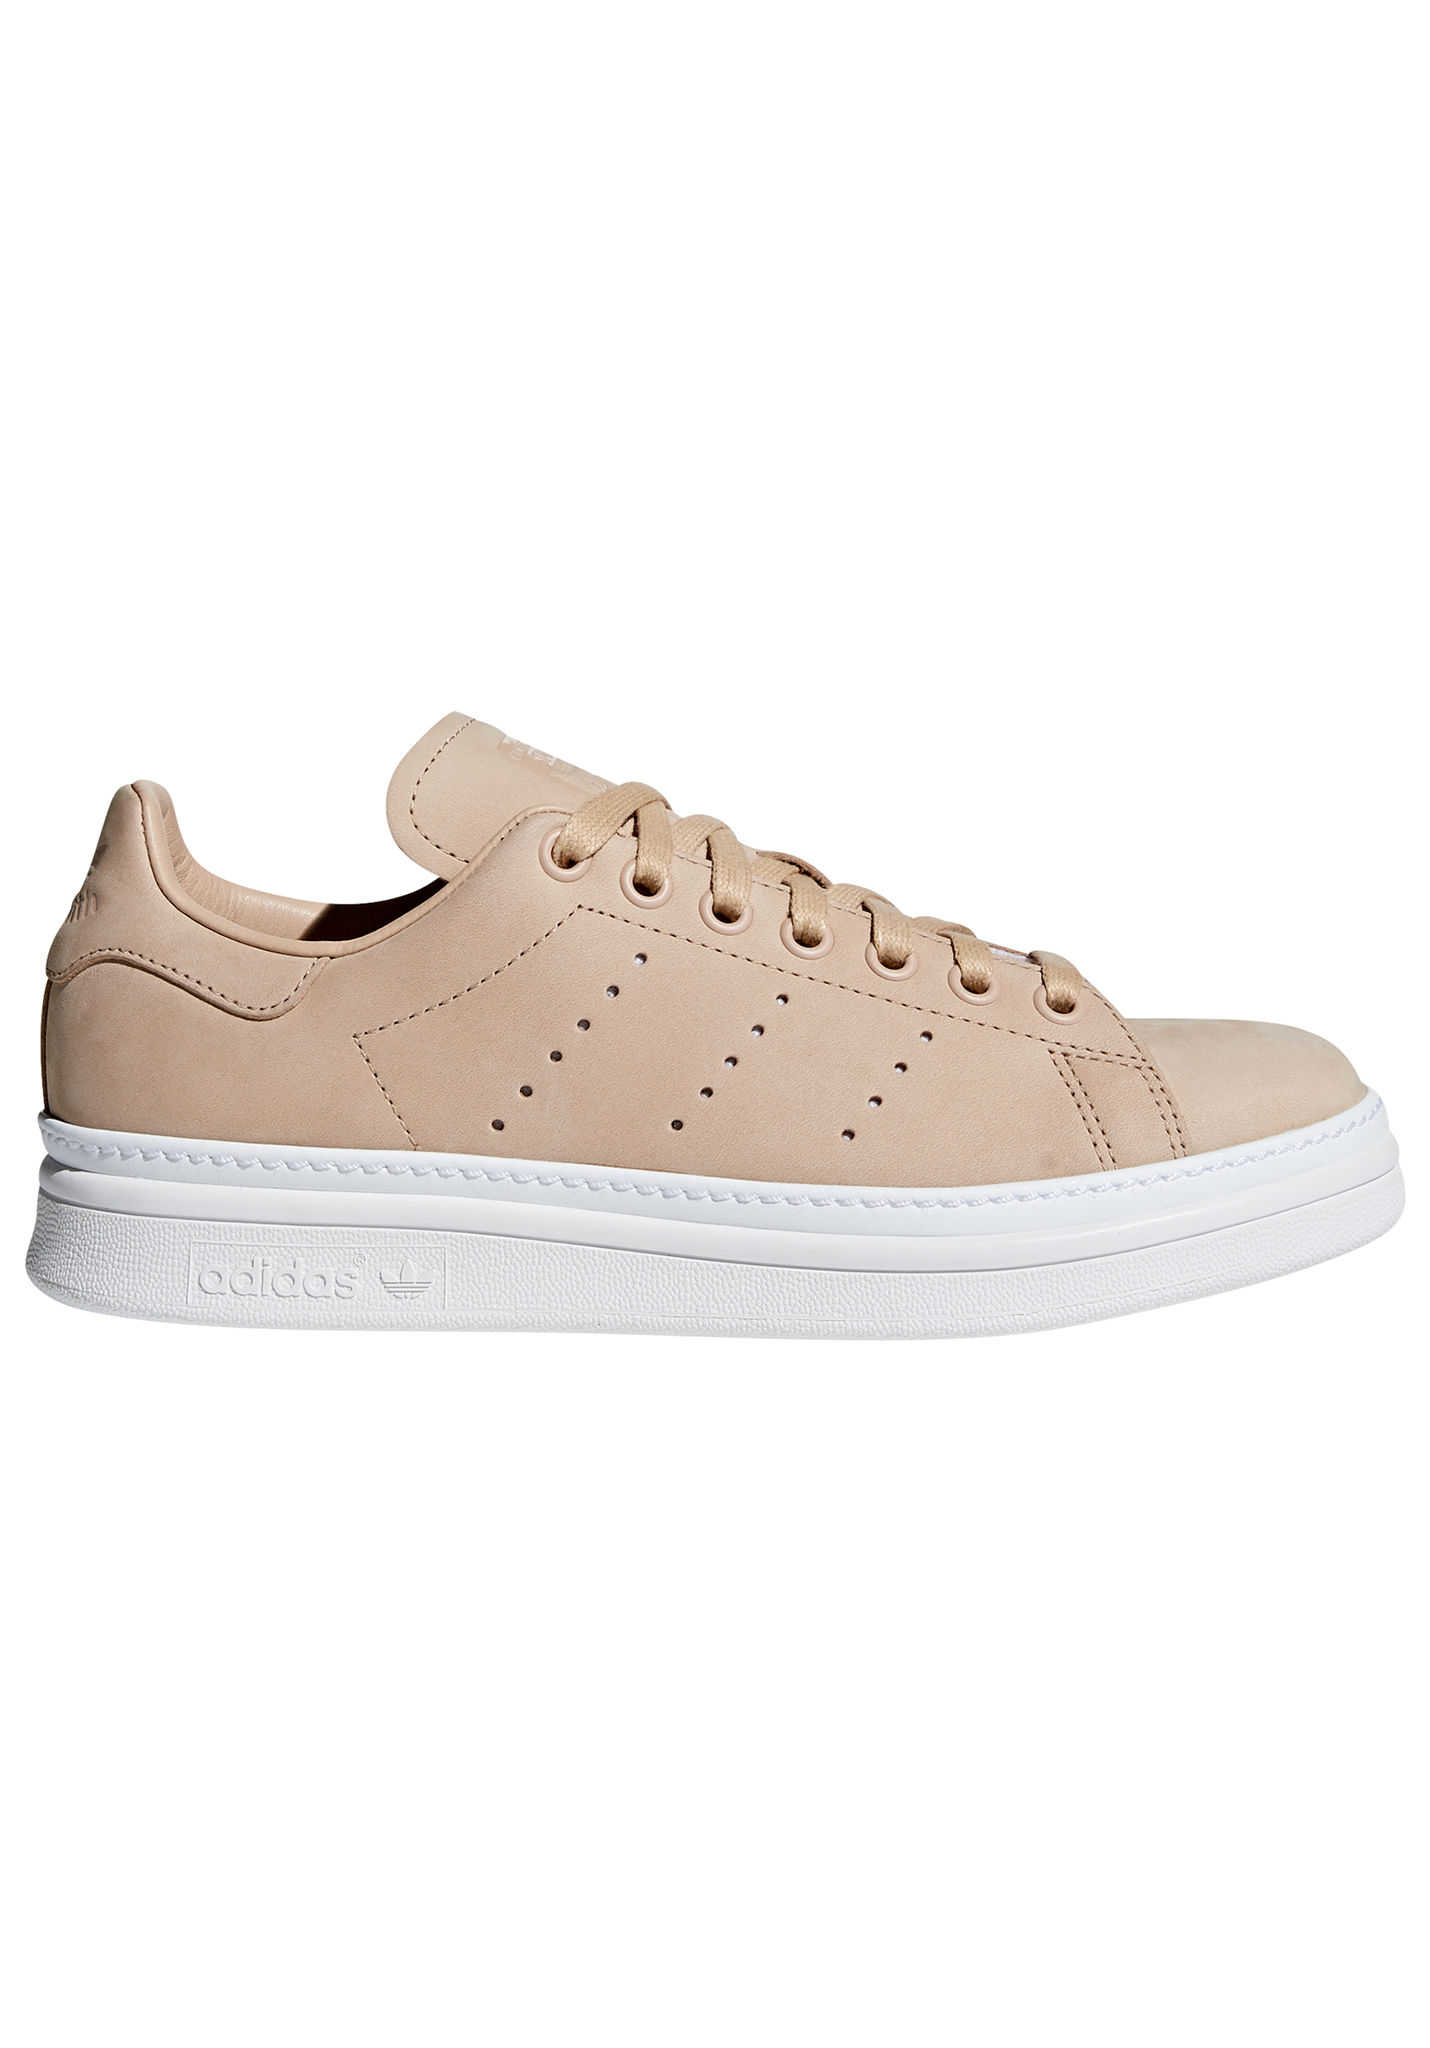 edffc4f40ccab2 ADIDAS ORIGINALS Stan Smith New Bold - Sneakers for Women - Beige - Planet  Sports